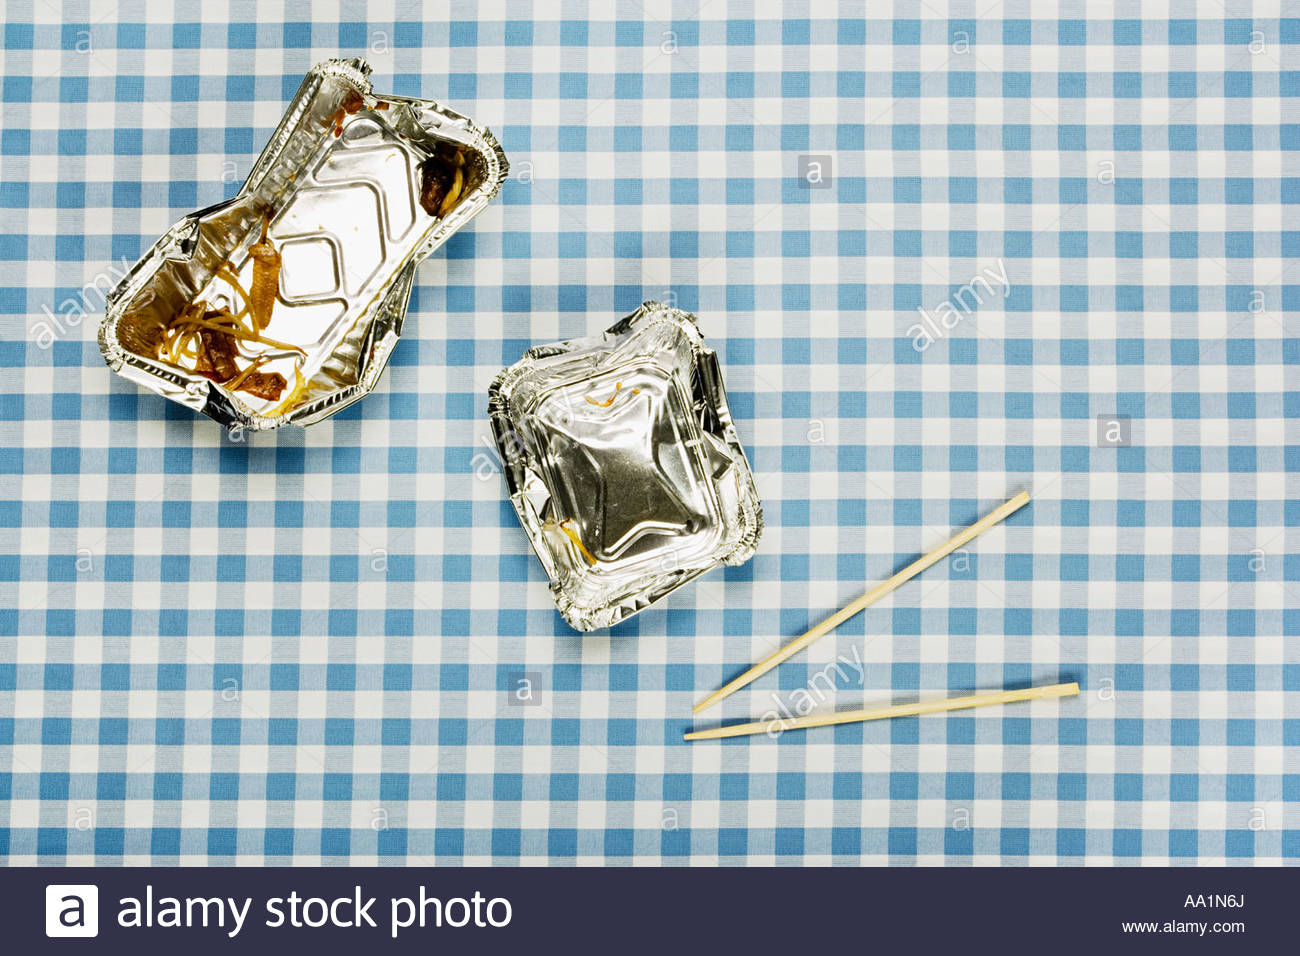 Fast food container and chopstick - Stock Image